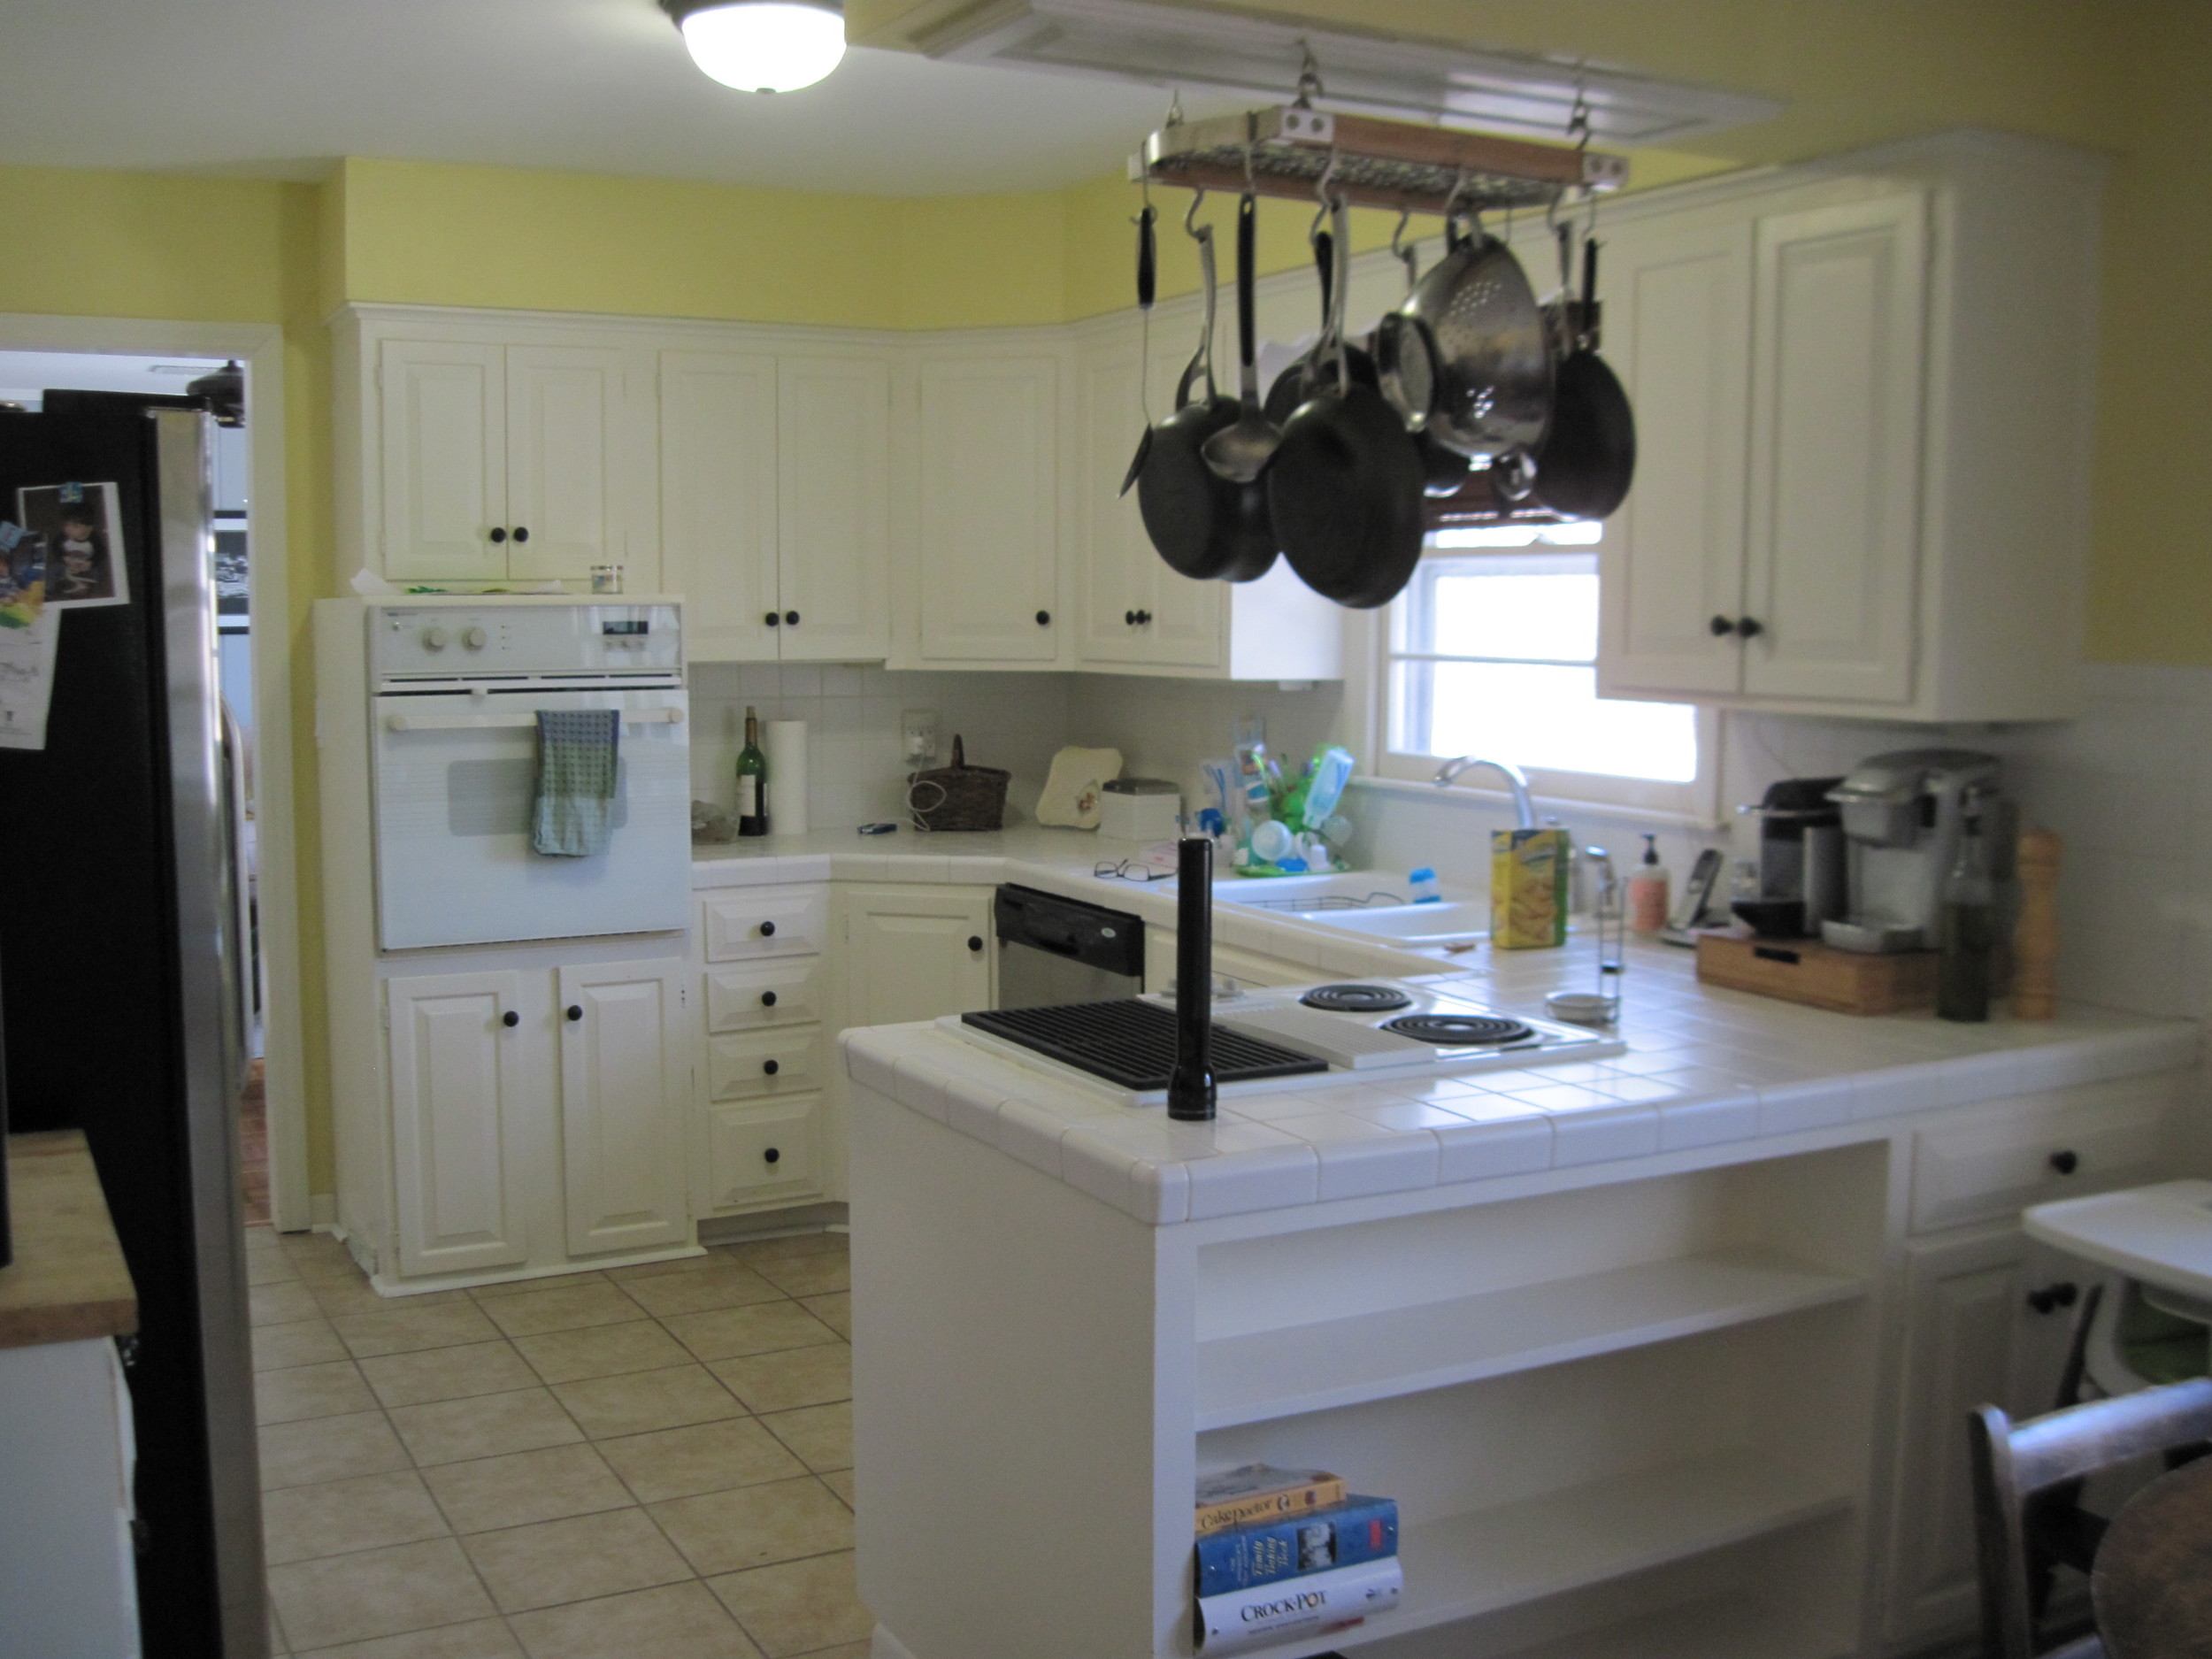 Our client loves to cook, to bake, and to entertain. Can you imagine hosting a Thanksgiving meal for your family here? With turkey, pumpkin pie, and two surly brothers-in-law? You couldn't do it.